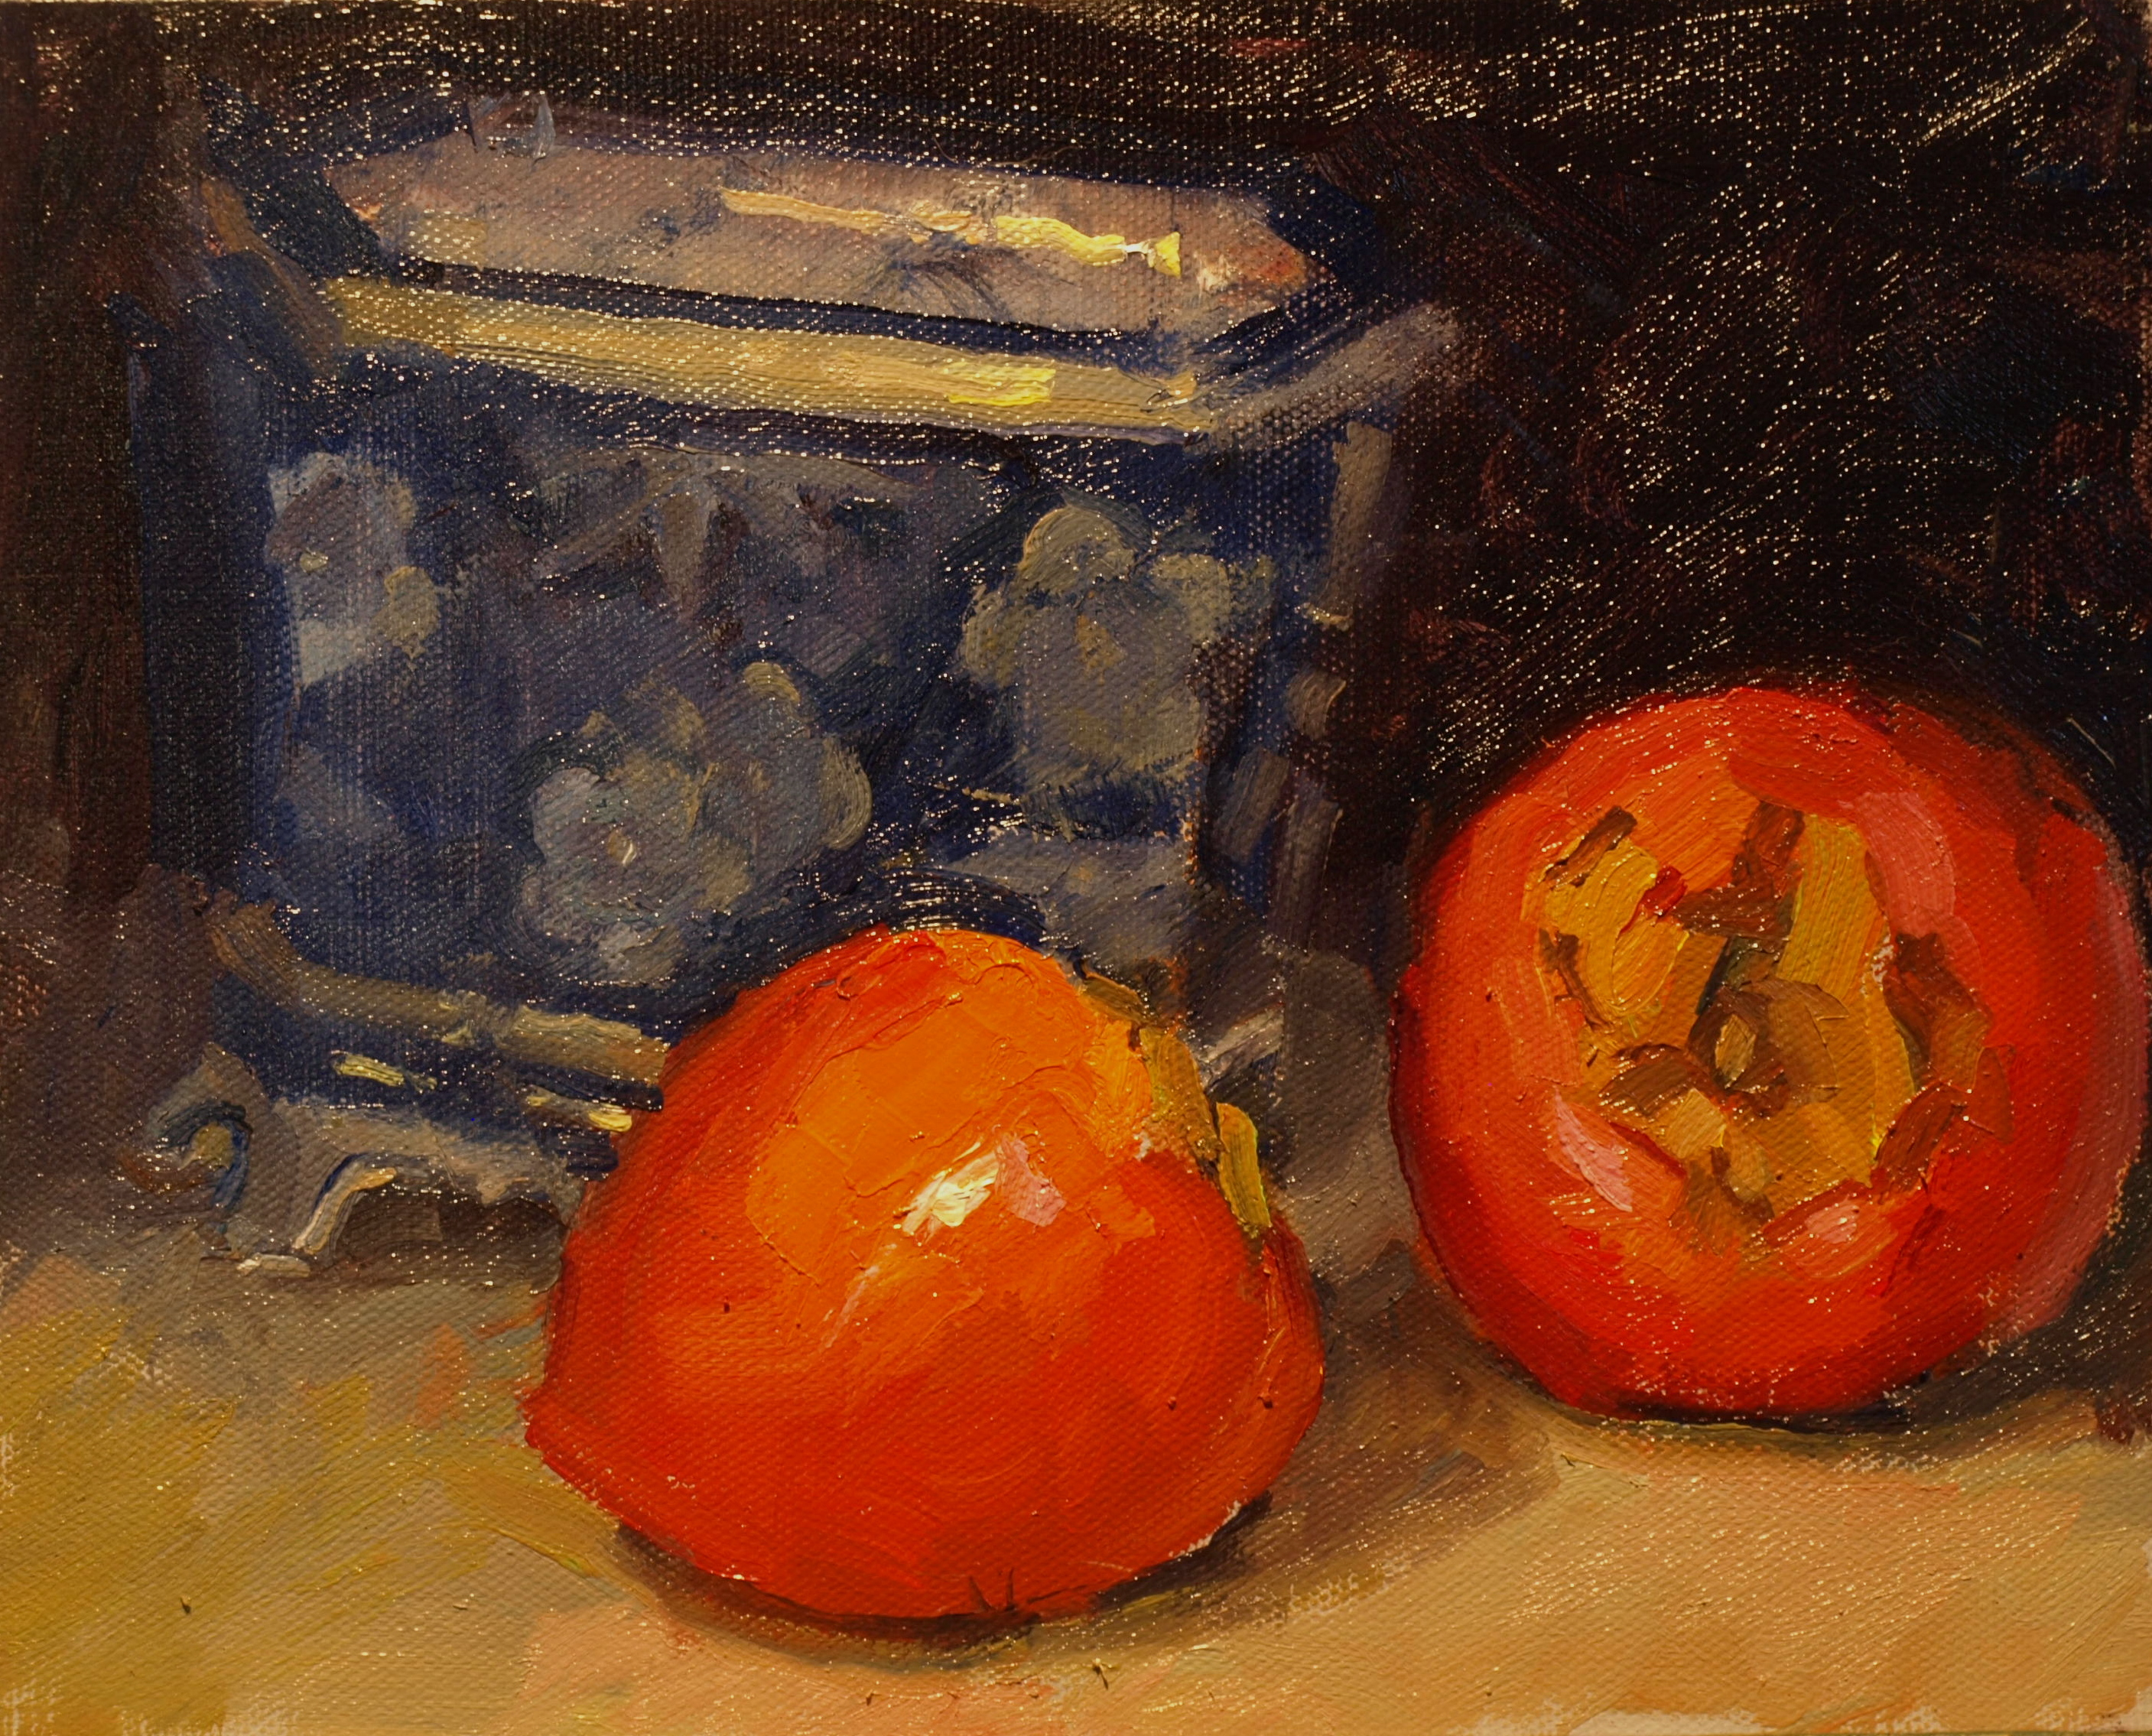 Two Persimmons, Oil on Panel, 8 x 10 Inches, by Susan Grisell, $200